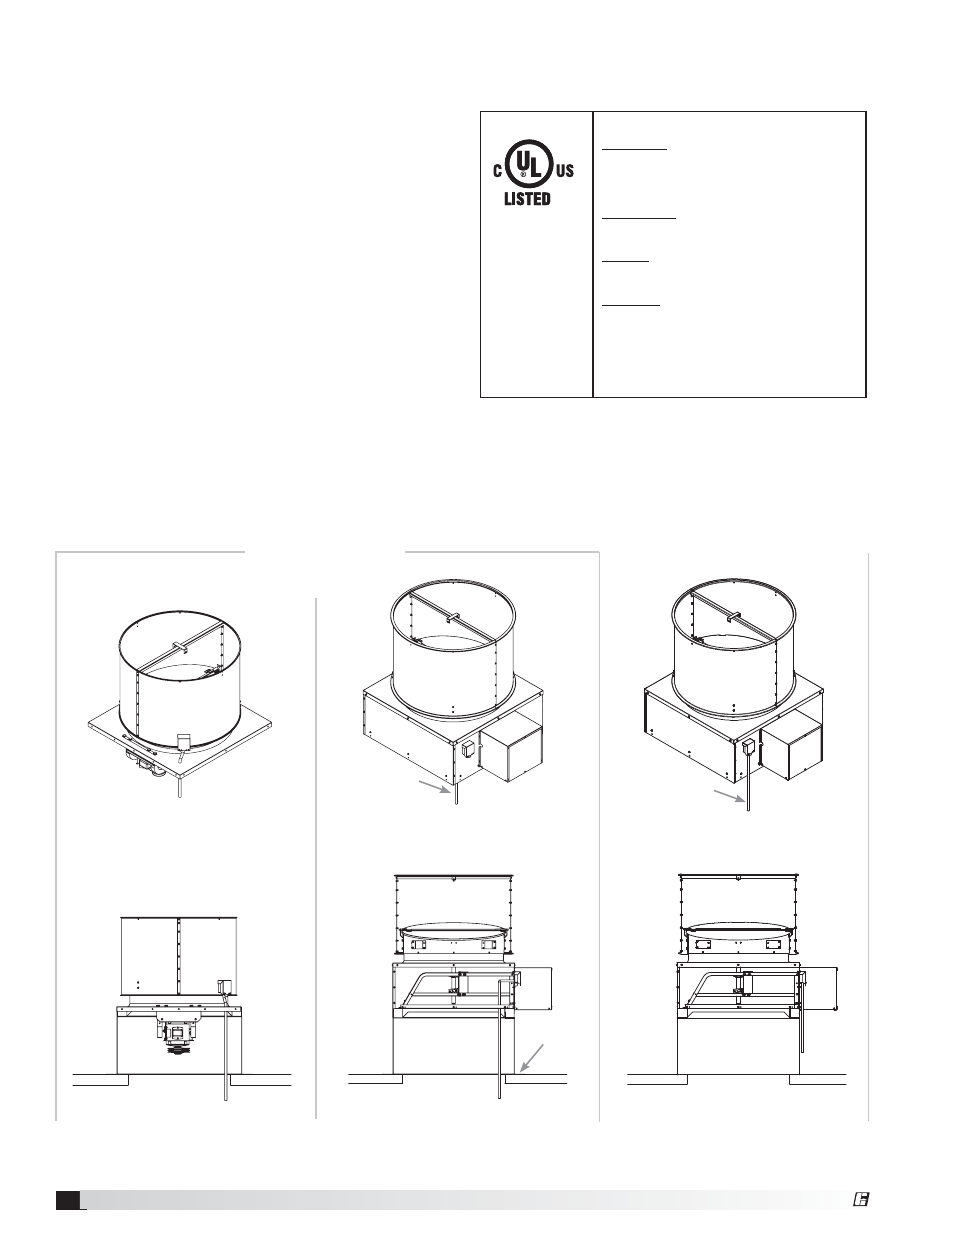 Disconnect wiring options, Electrical connections